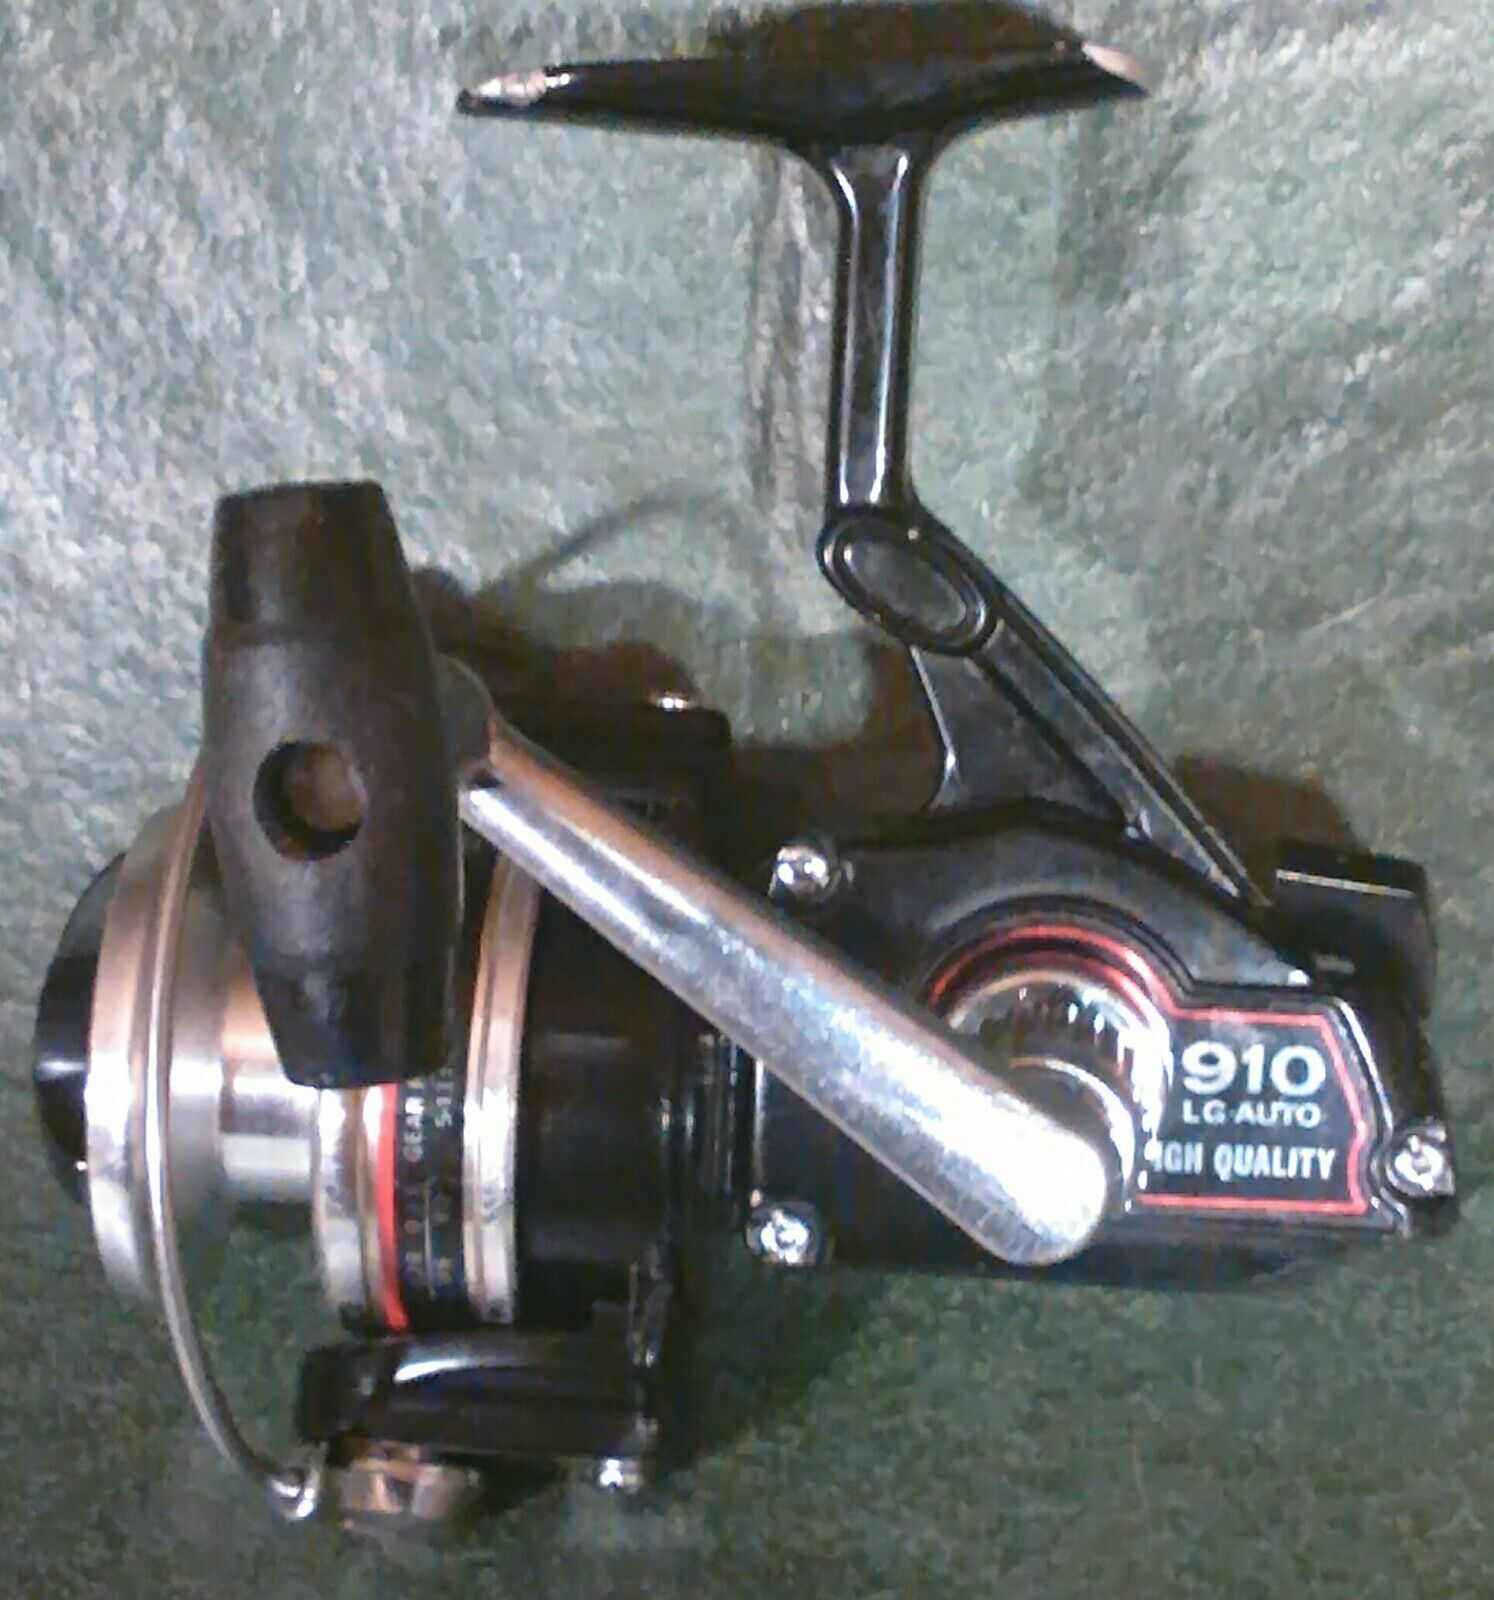 Olympic 910 LG Auto ultralight-light (6-10 ) spinning reel. Made in Japan.